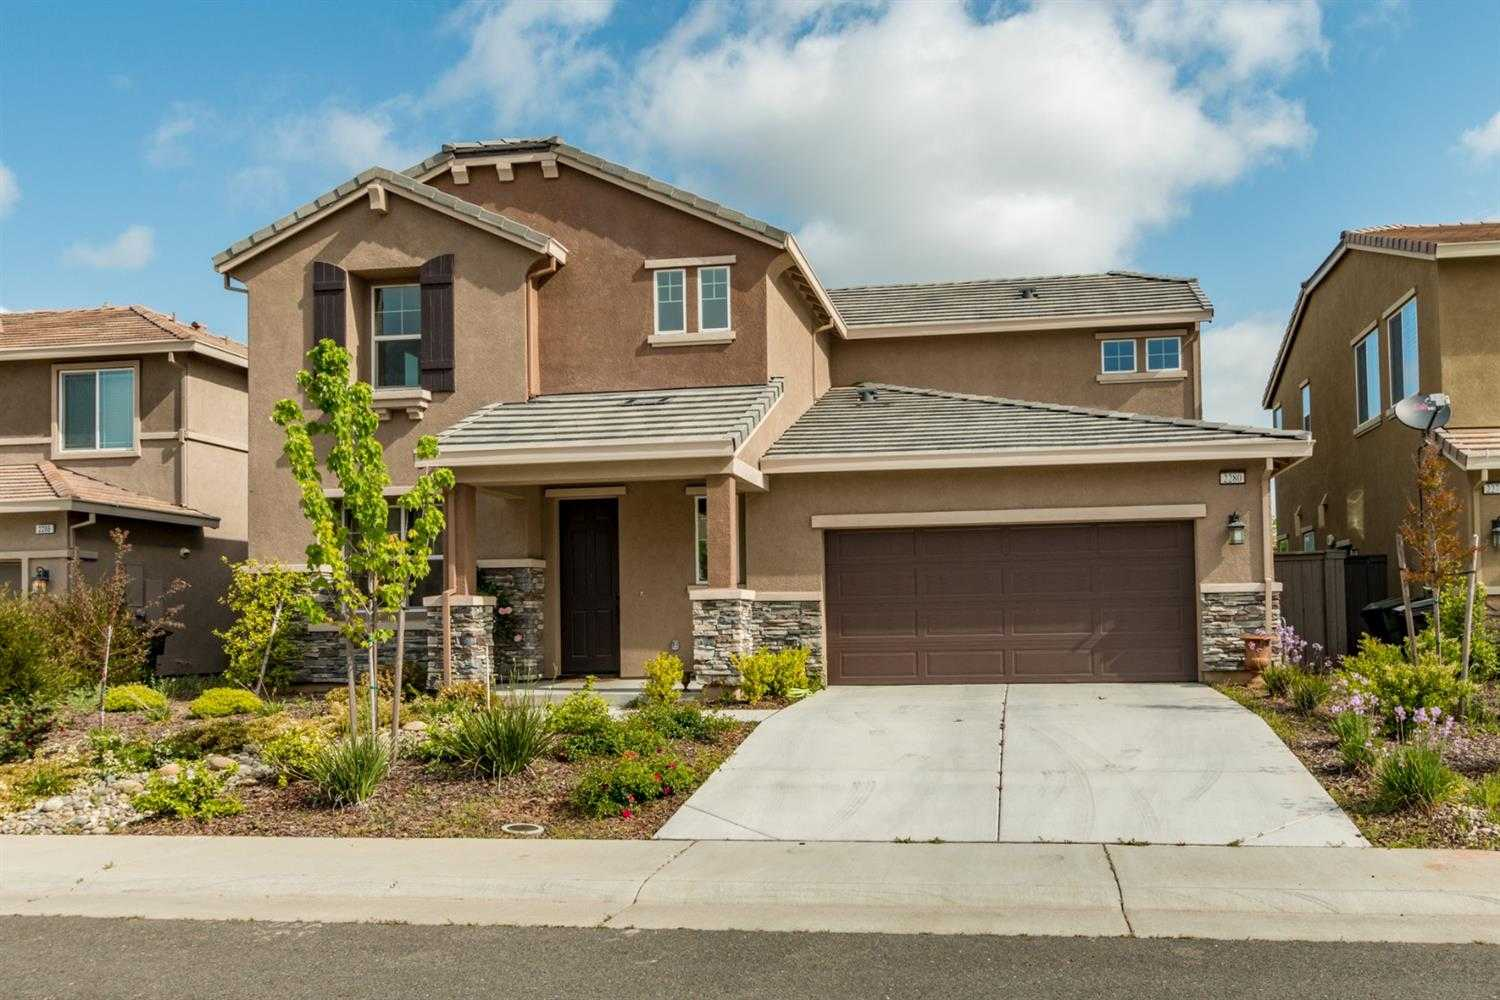 2280 Stansfield Dr Roseville, CA 95747